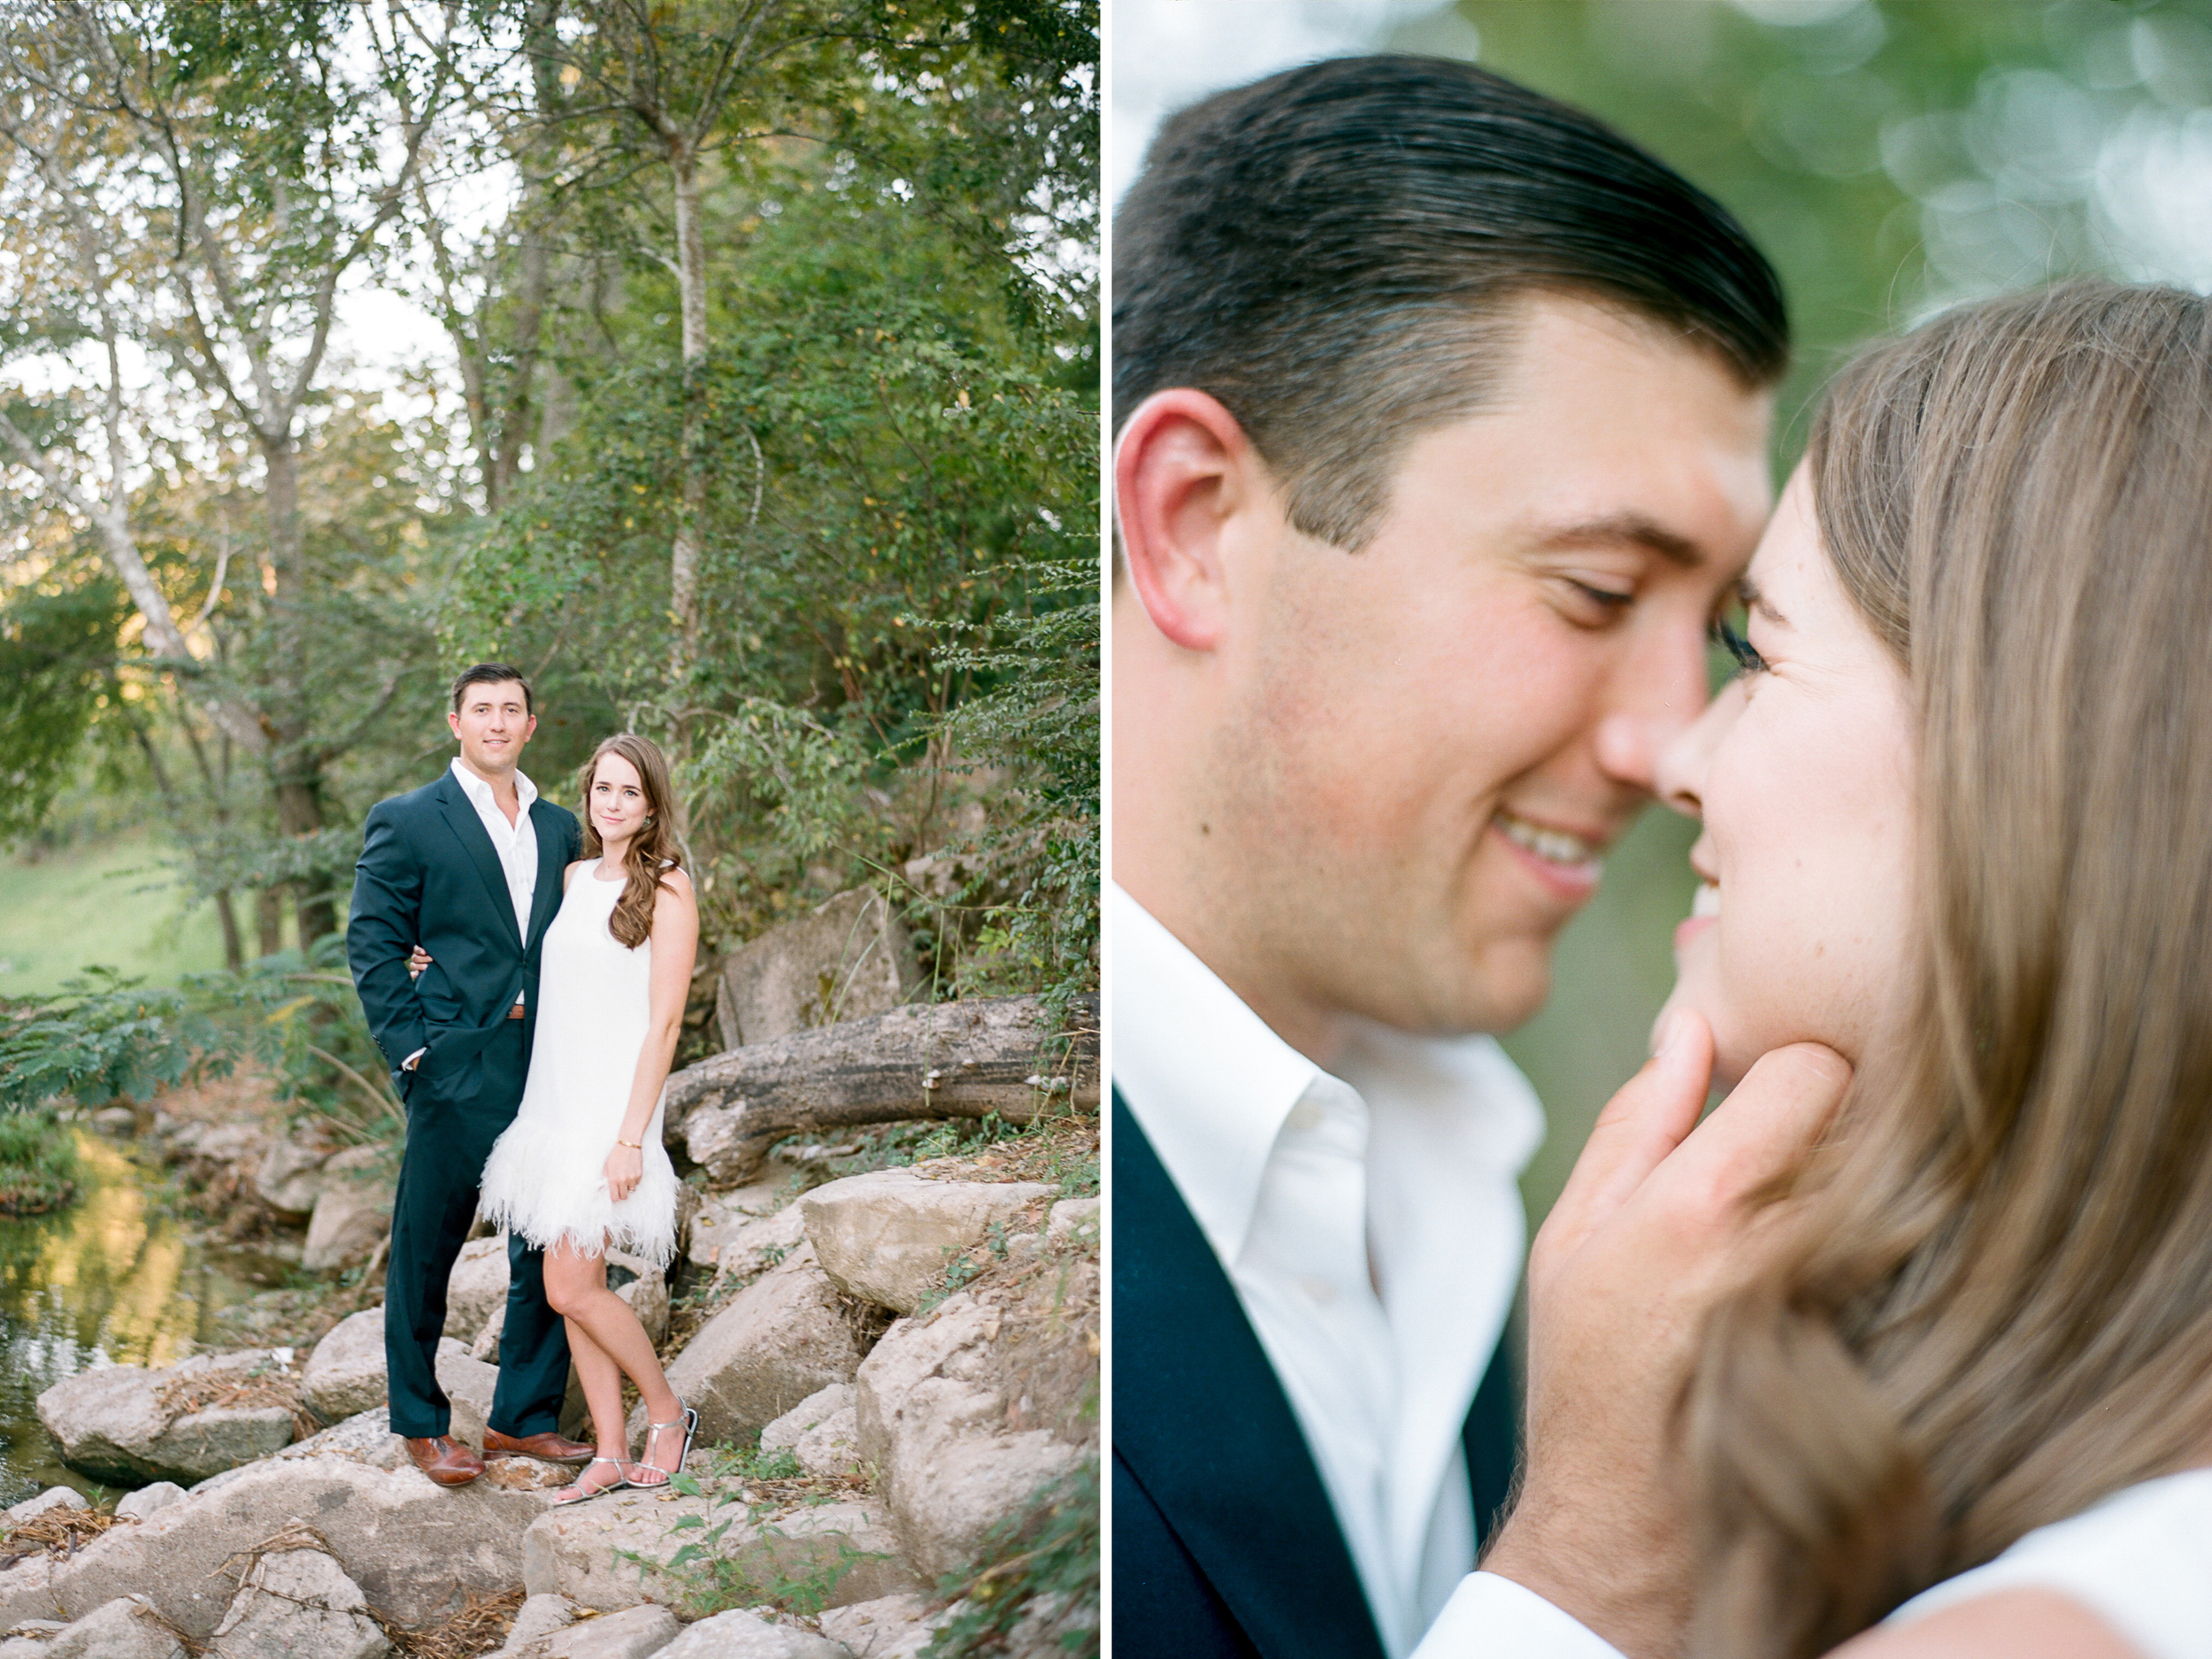 Dana-Fernandez-Photography-Houston-Engagement-Photographer-Film-108.jpg